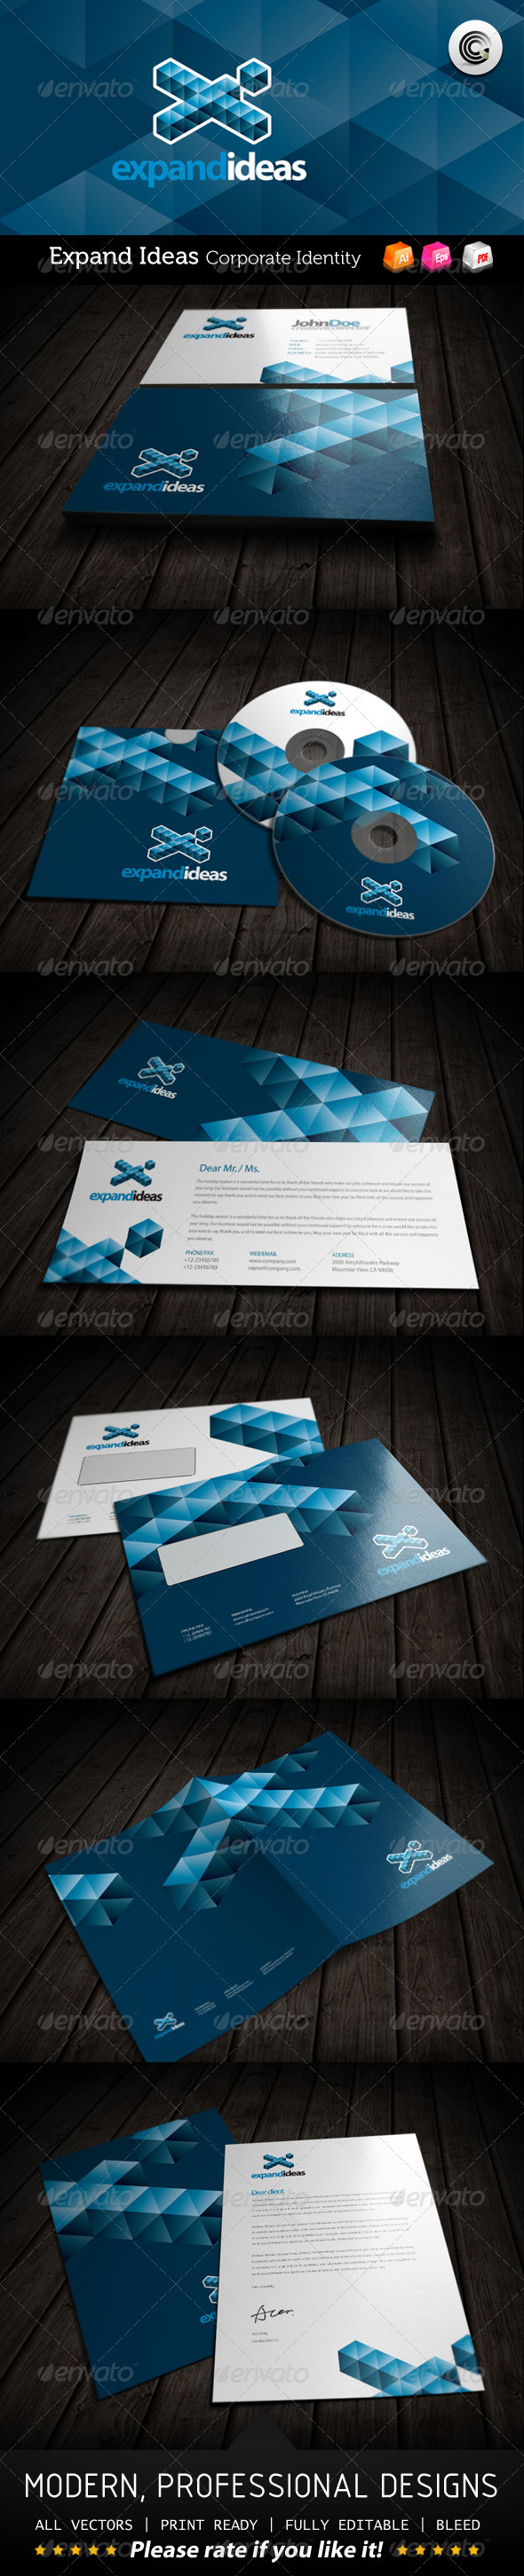 Expand Ideas Corporate Identity - Stationery Print Templates